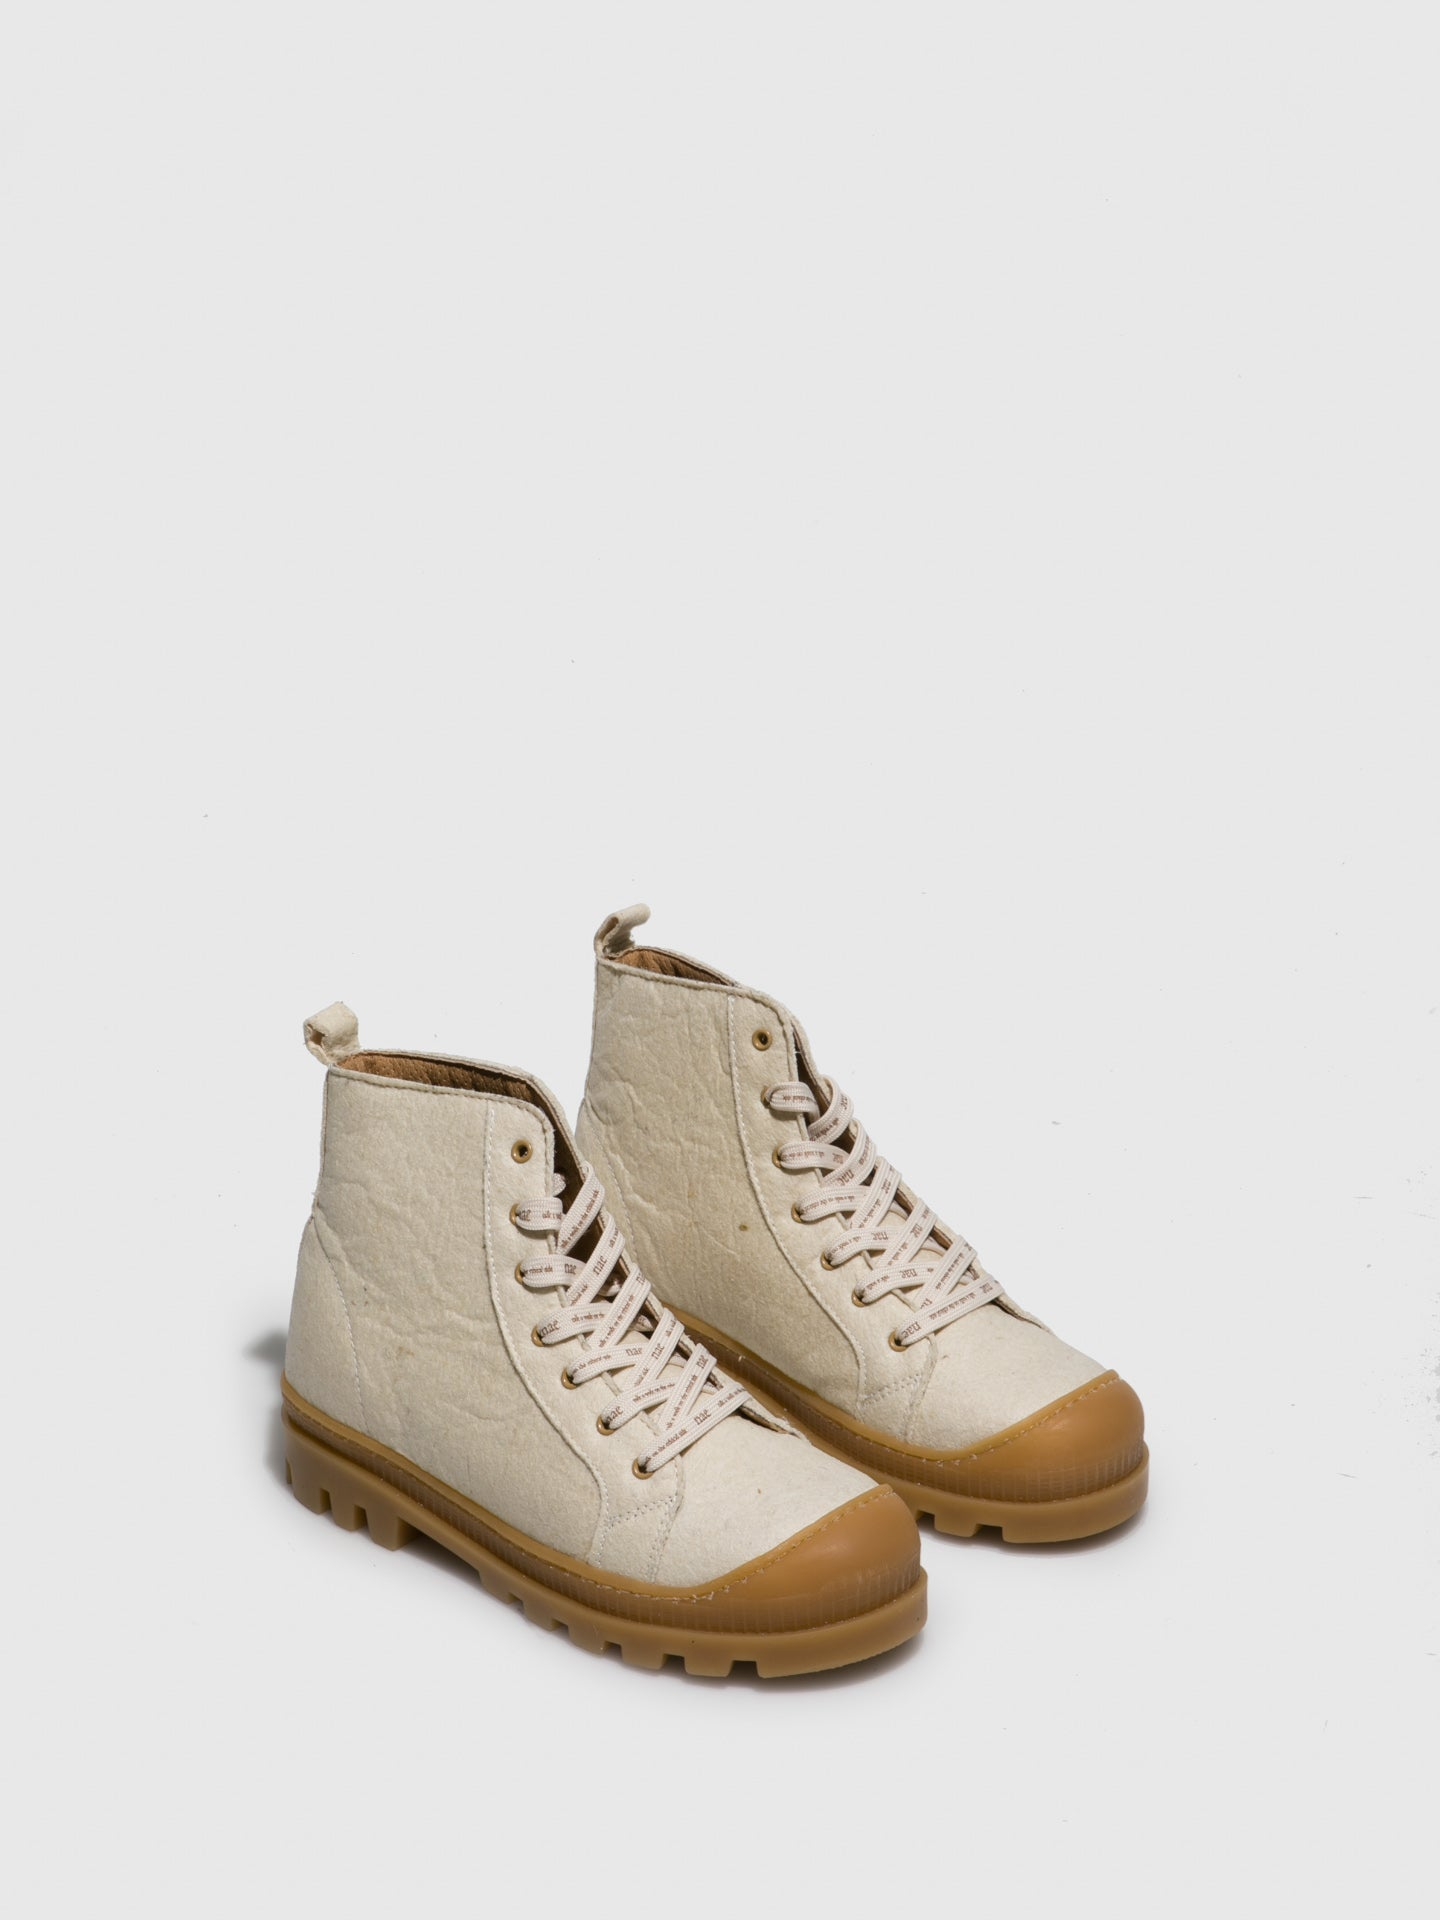 NAE Vegan Shoes White Lace-up Boots